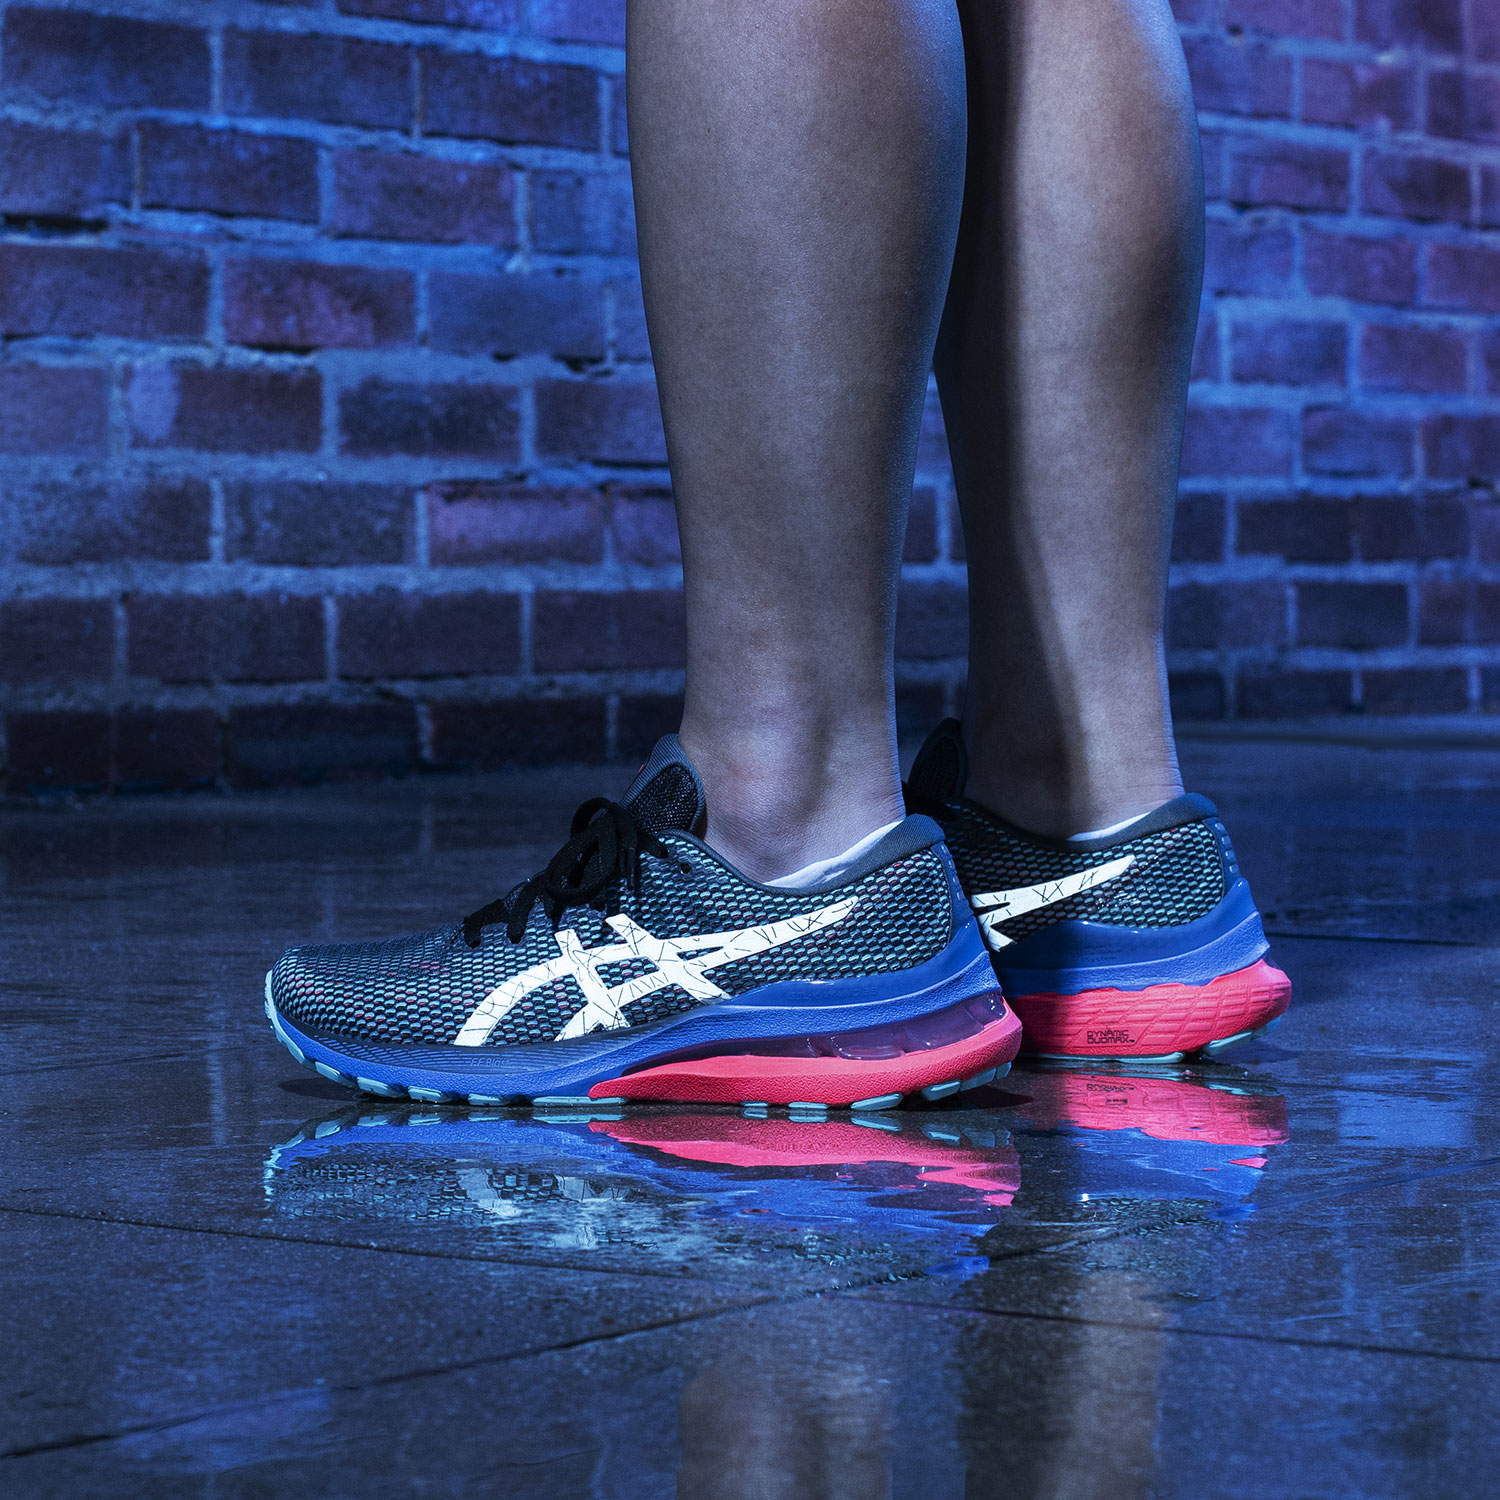 Asics Gel Kayano 28 Lite Show - Carrier Grey/Pure Silver